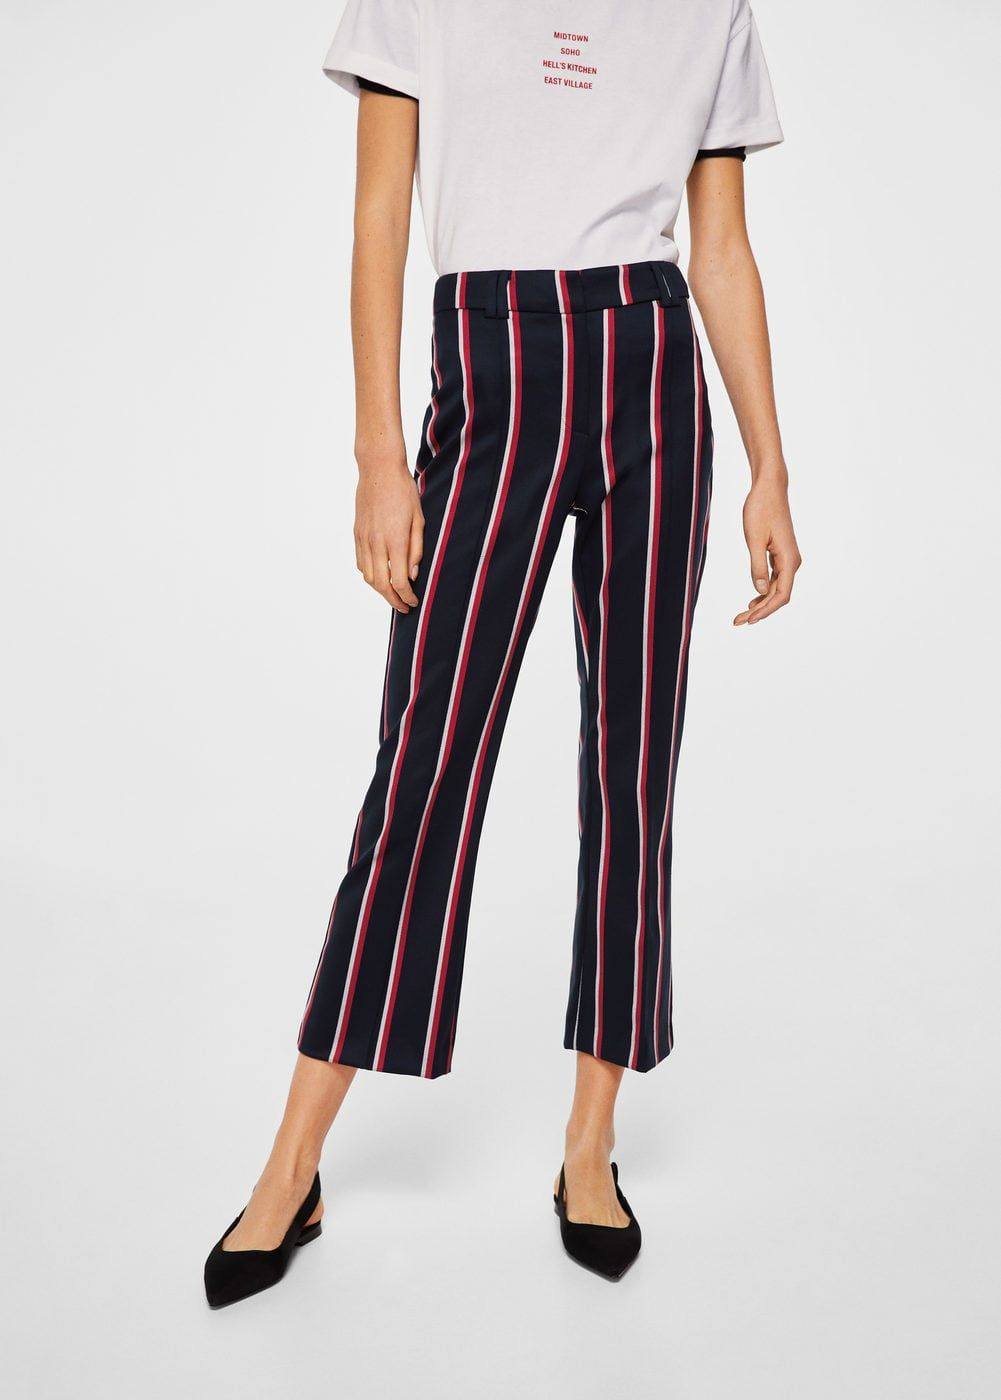 f11d5d4da3 Straight striped trousers - Women in 2019